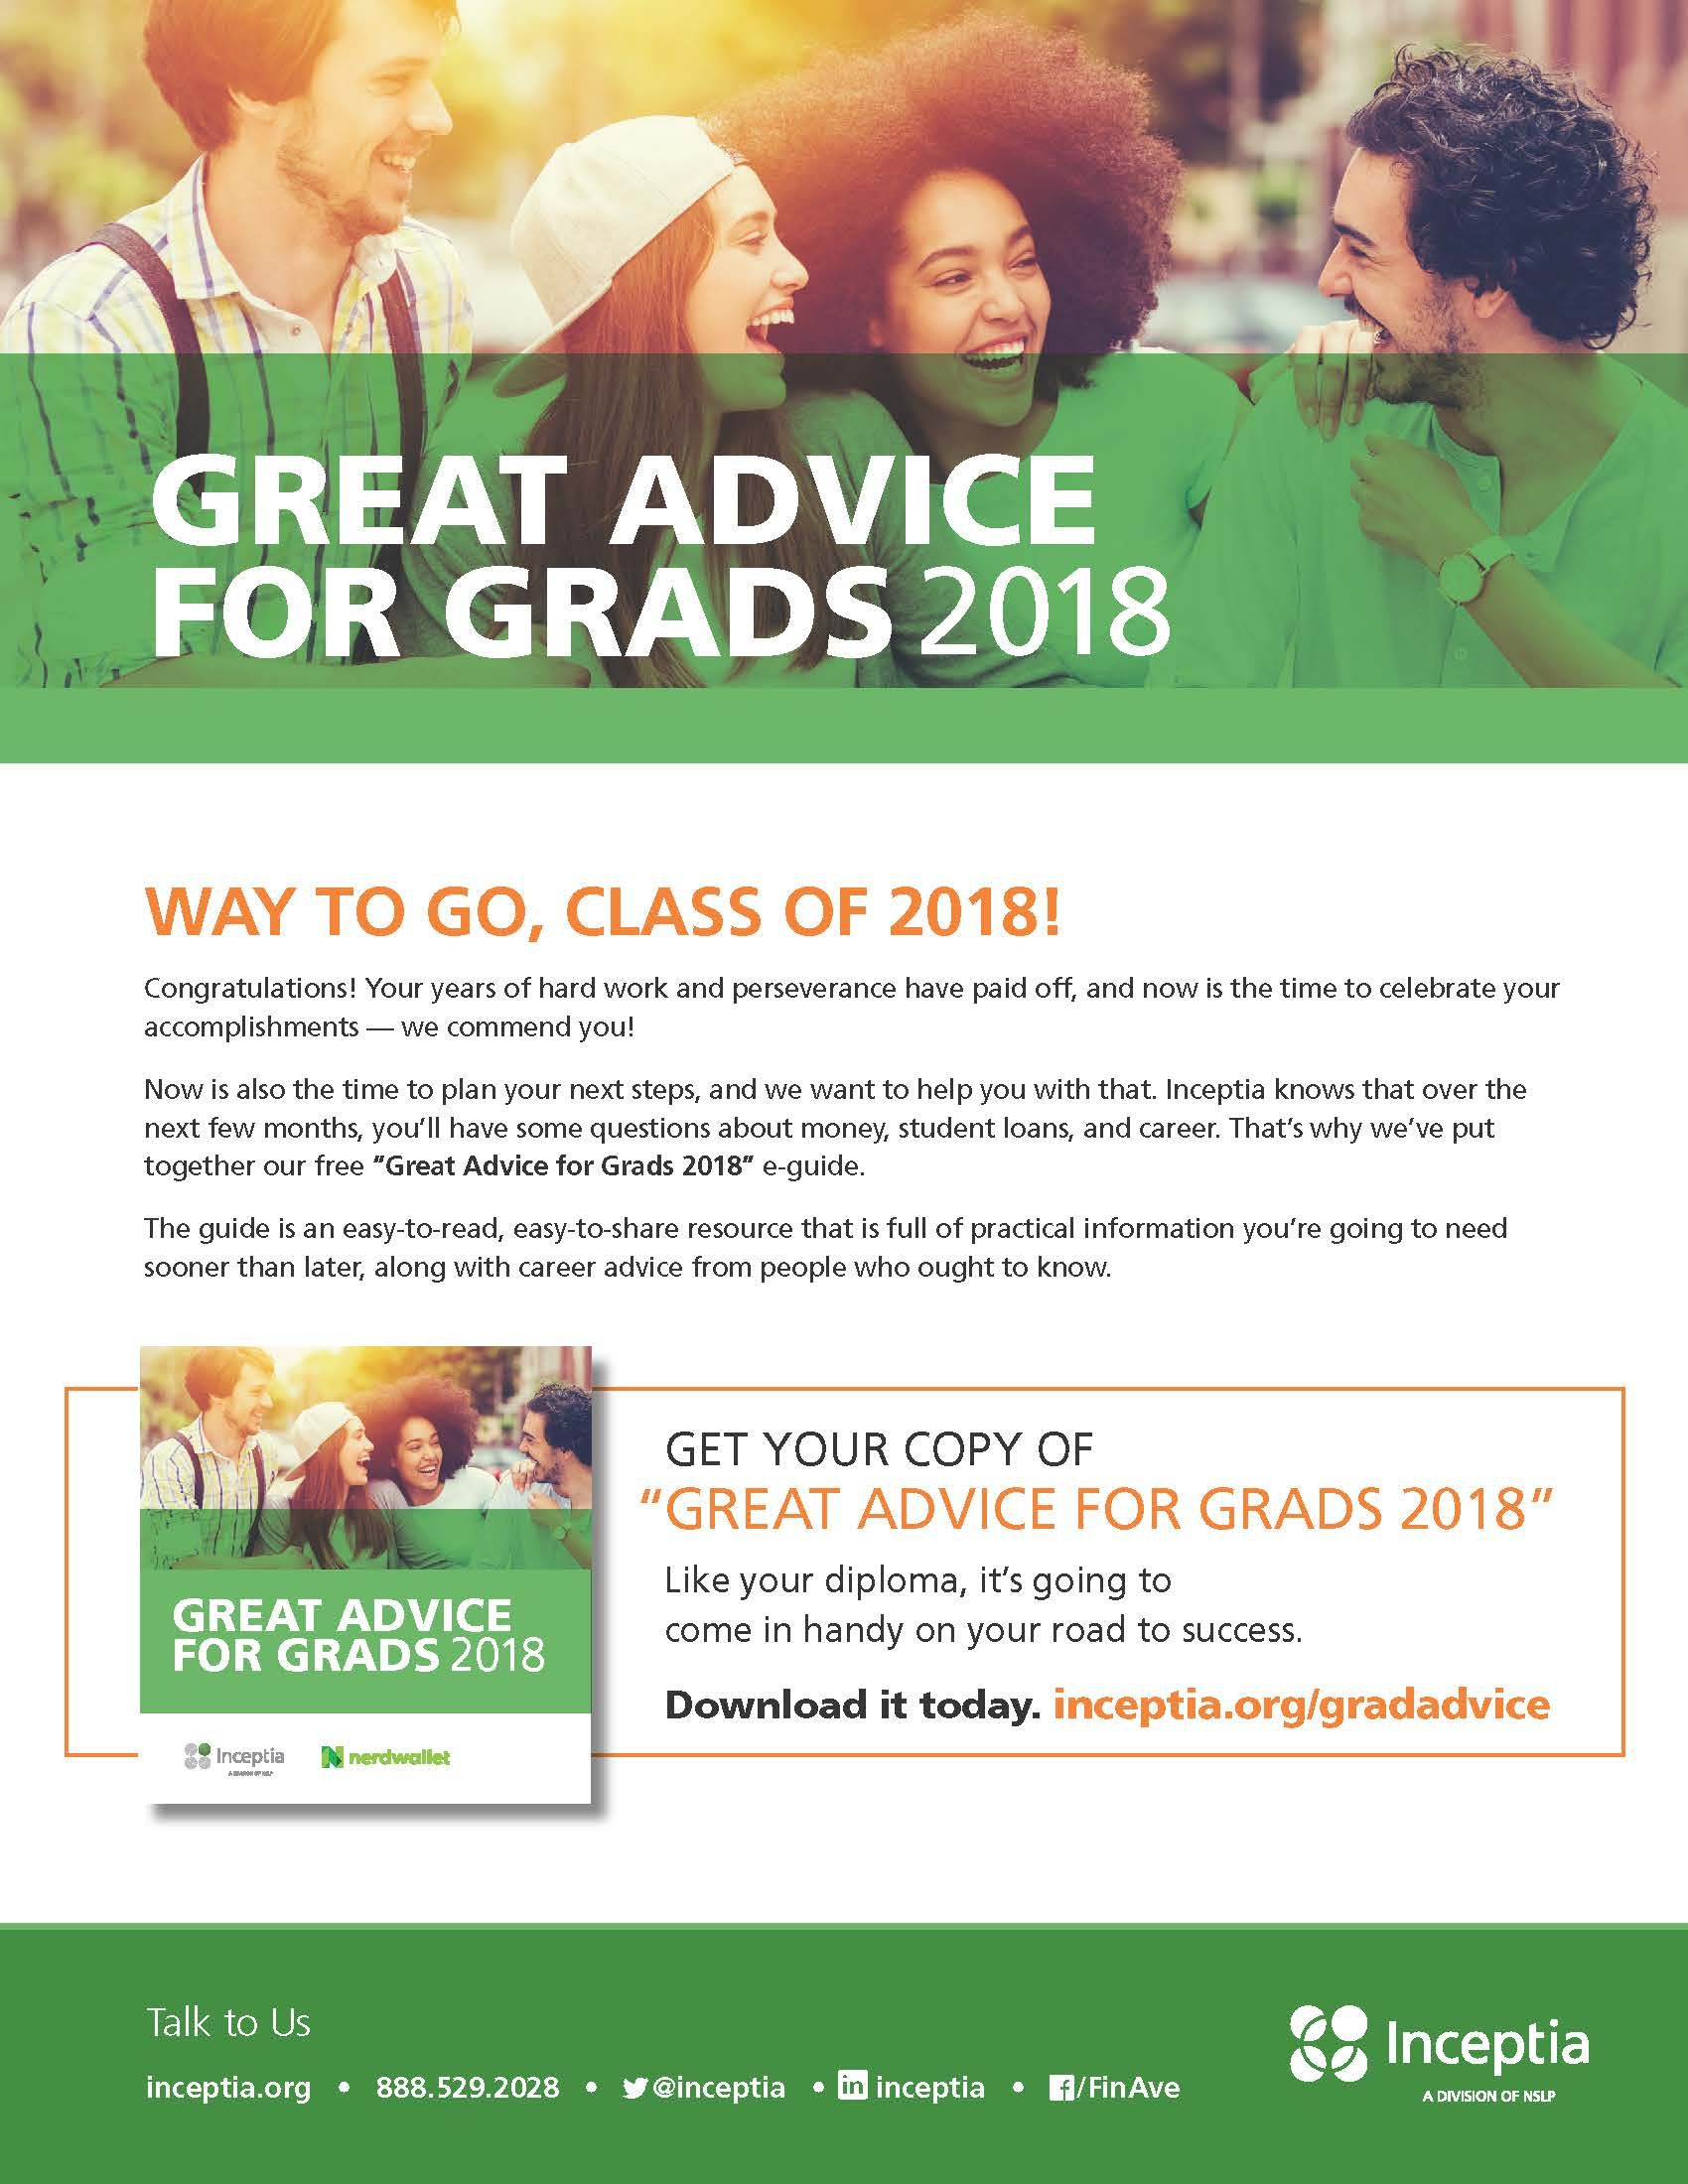 Inceptia Great Advice for Grads 2018